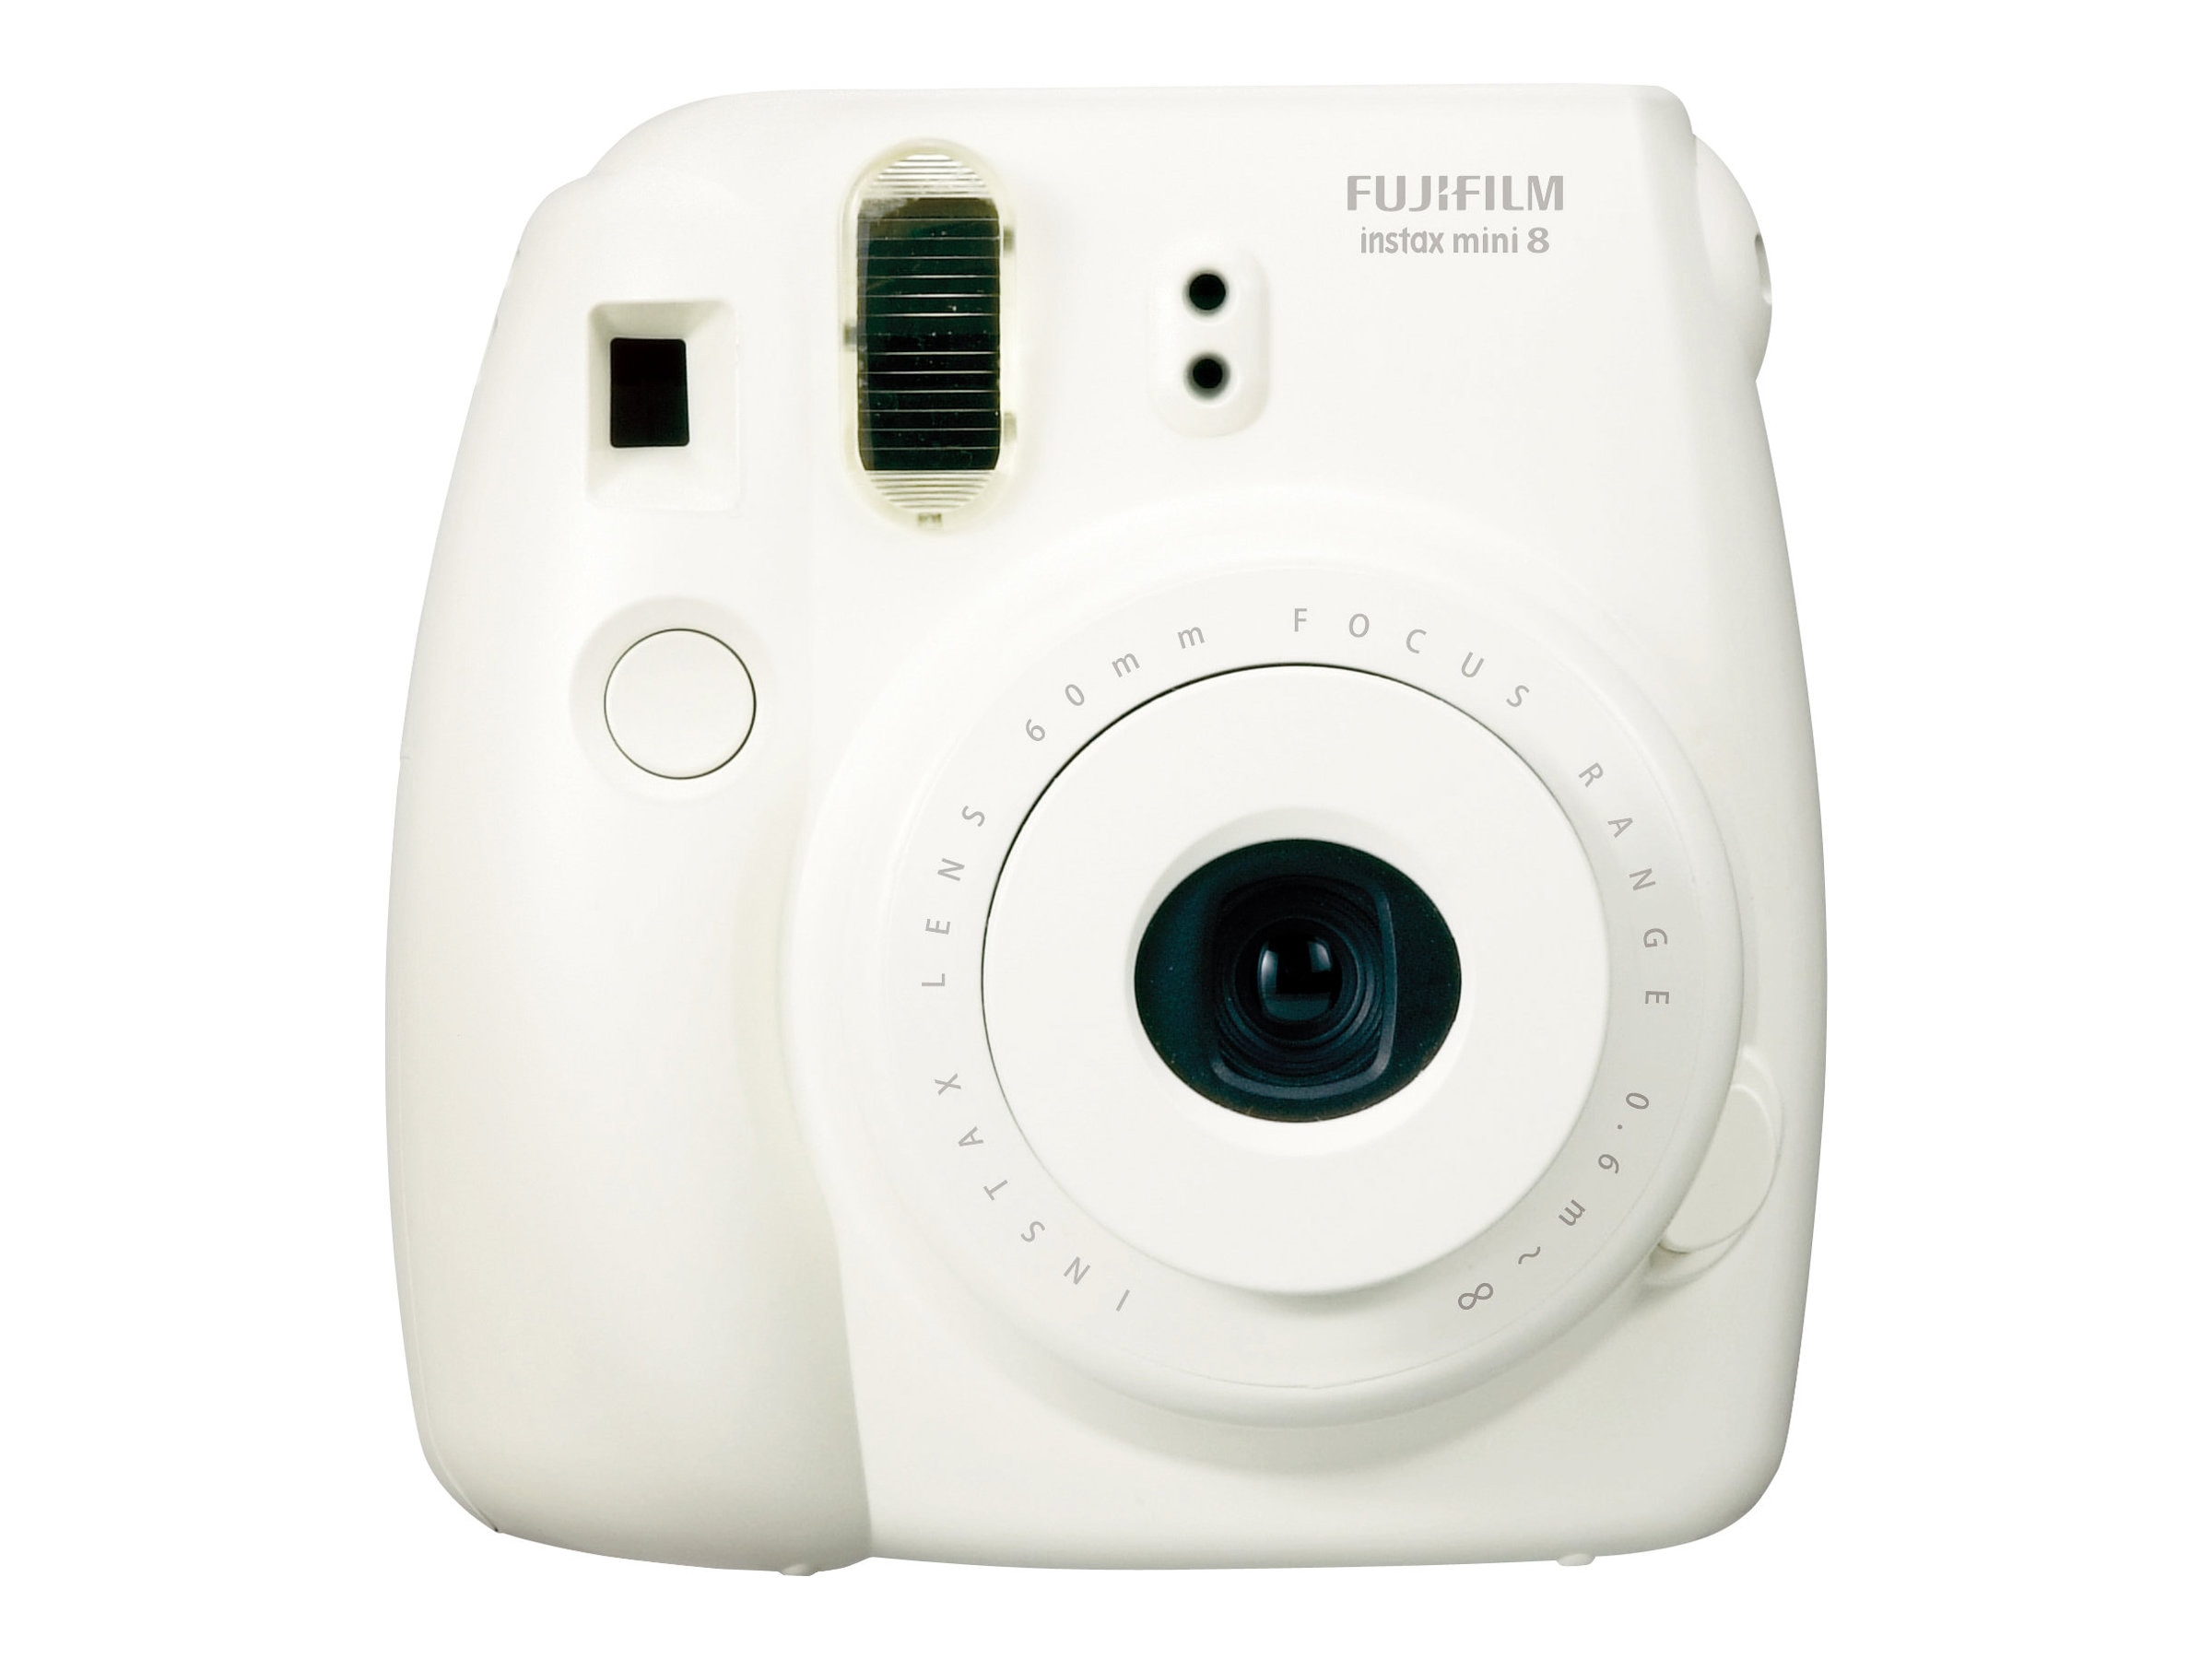 Fujifilm Instax Mini 8 Camera, White